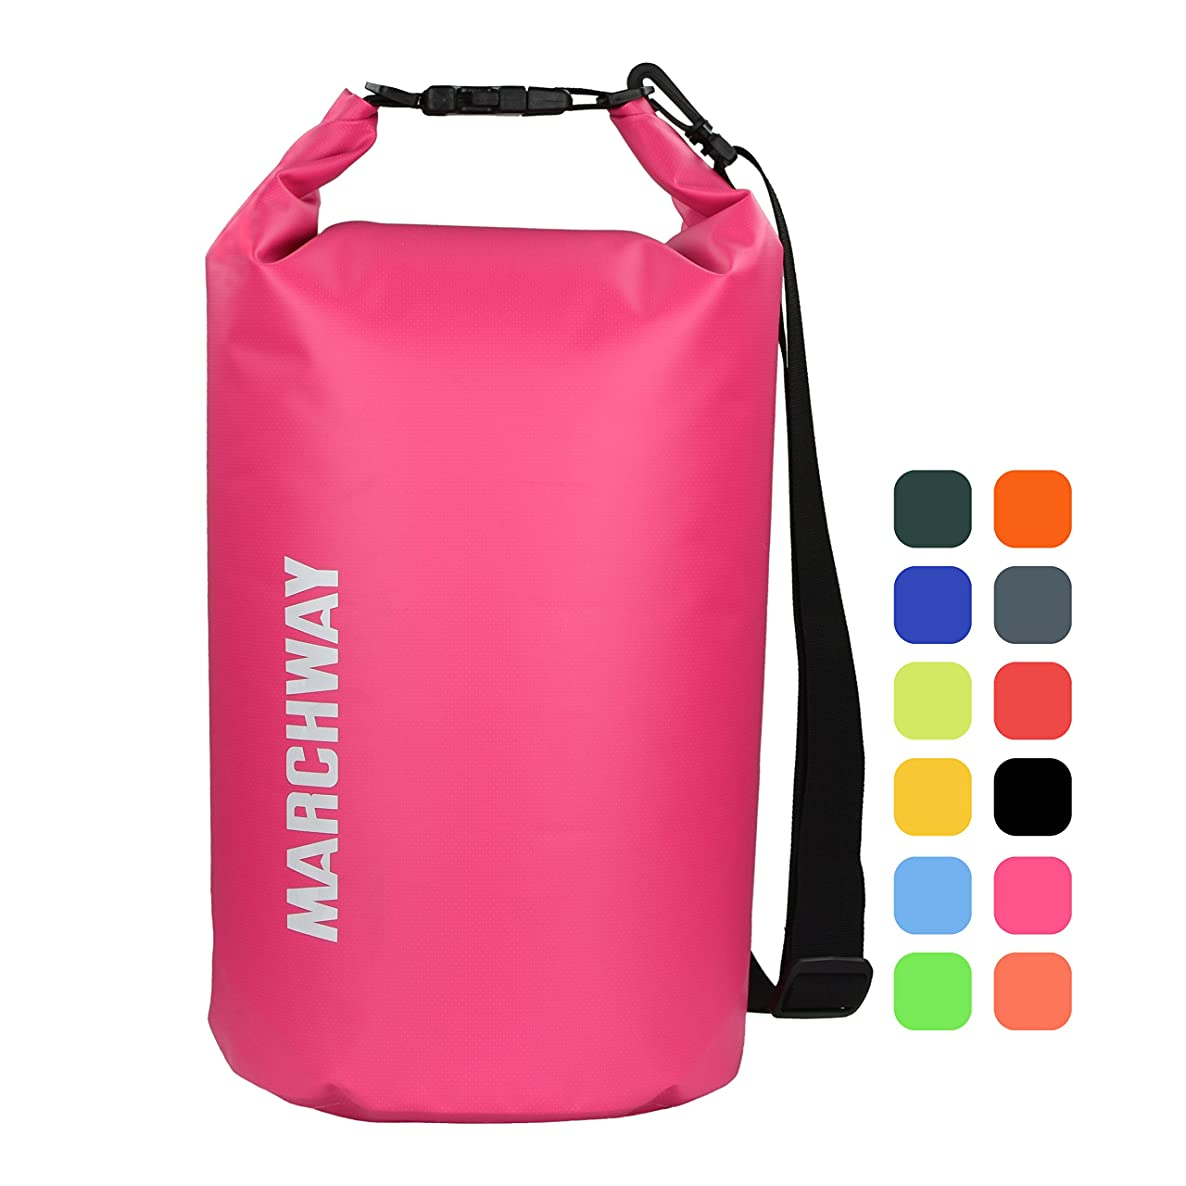 MARCHWAY Floating Waterproof Dry Bag 5L/10L/20L/30L/40L, Roll Top Sack Keeps Gear Dry for Kayaking, Rafting, Boating, Swimming, Camping, Hiking, Beach, Fishing mqyiuotgshzakkip